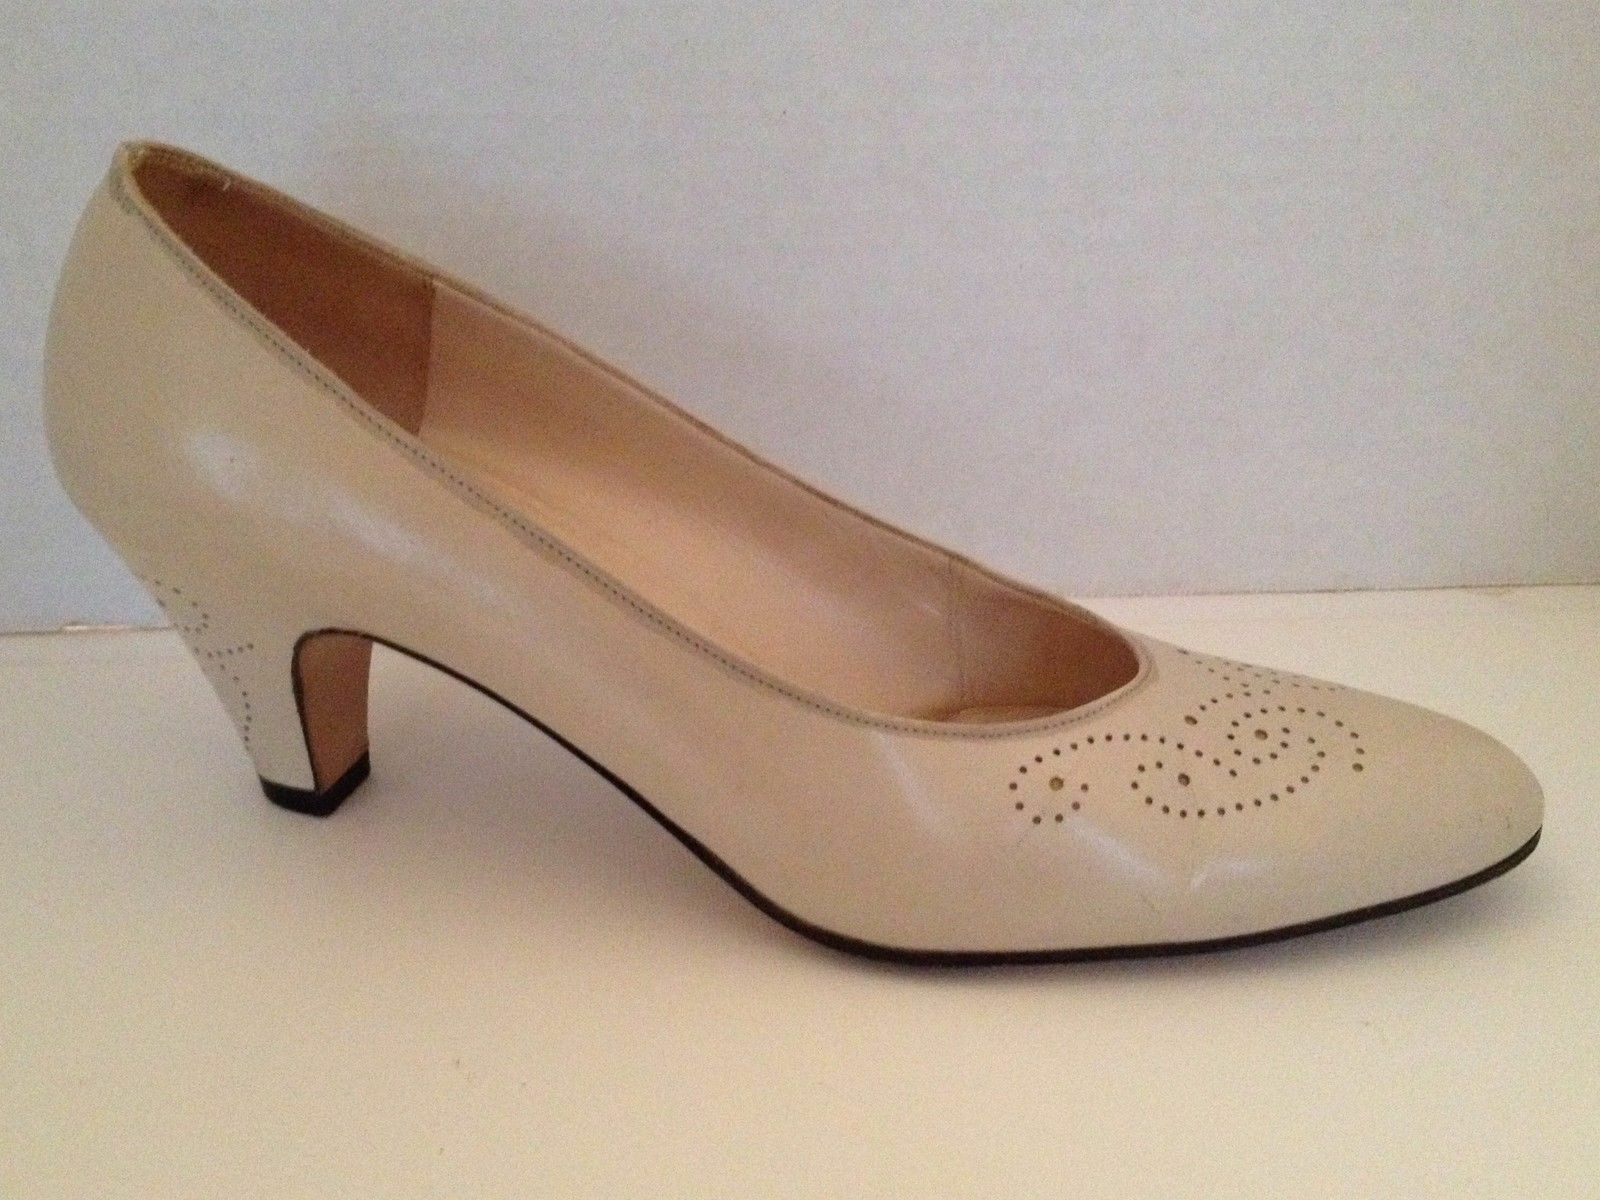 Salvatore Ferragamo Heels Womens Size Size Size 7.5 AAAA Beige Narrow shoes 7 1 2 Pumps 11f4ea